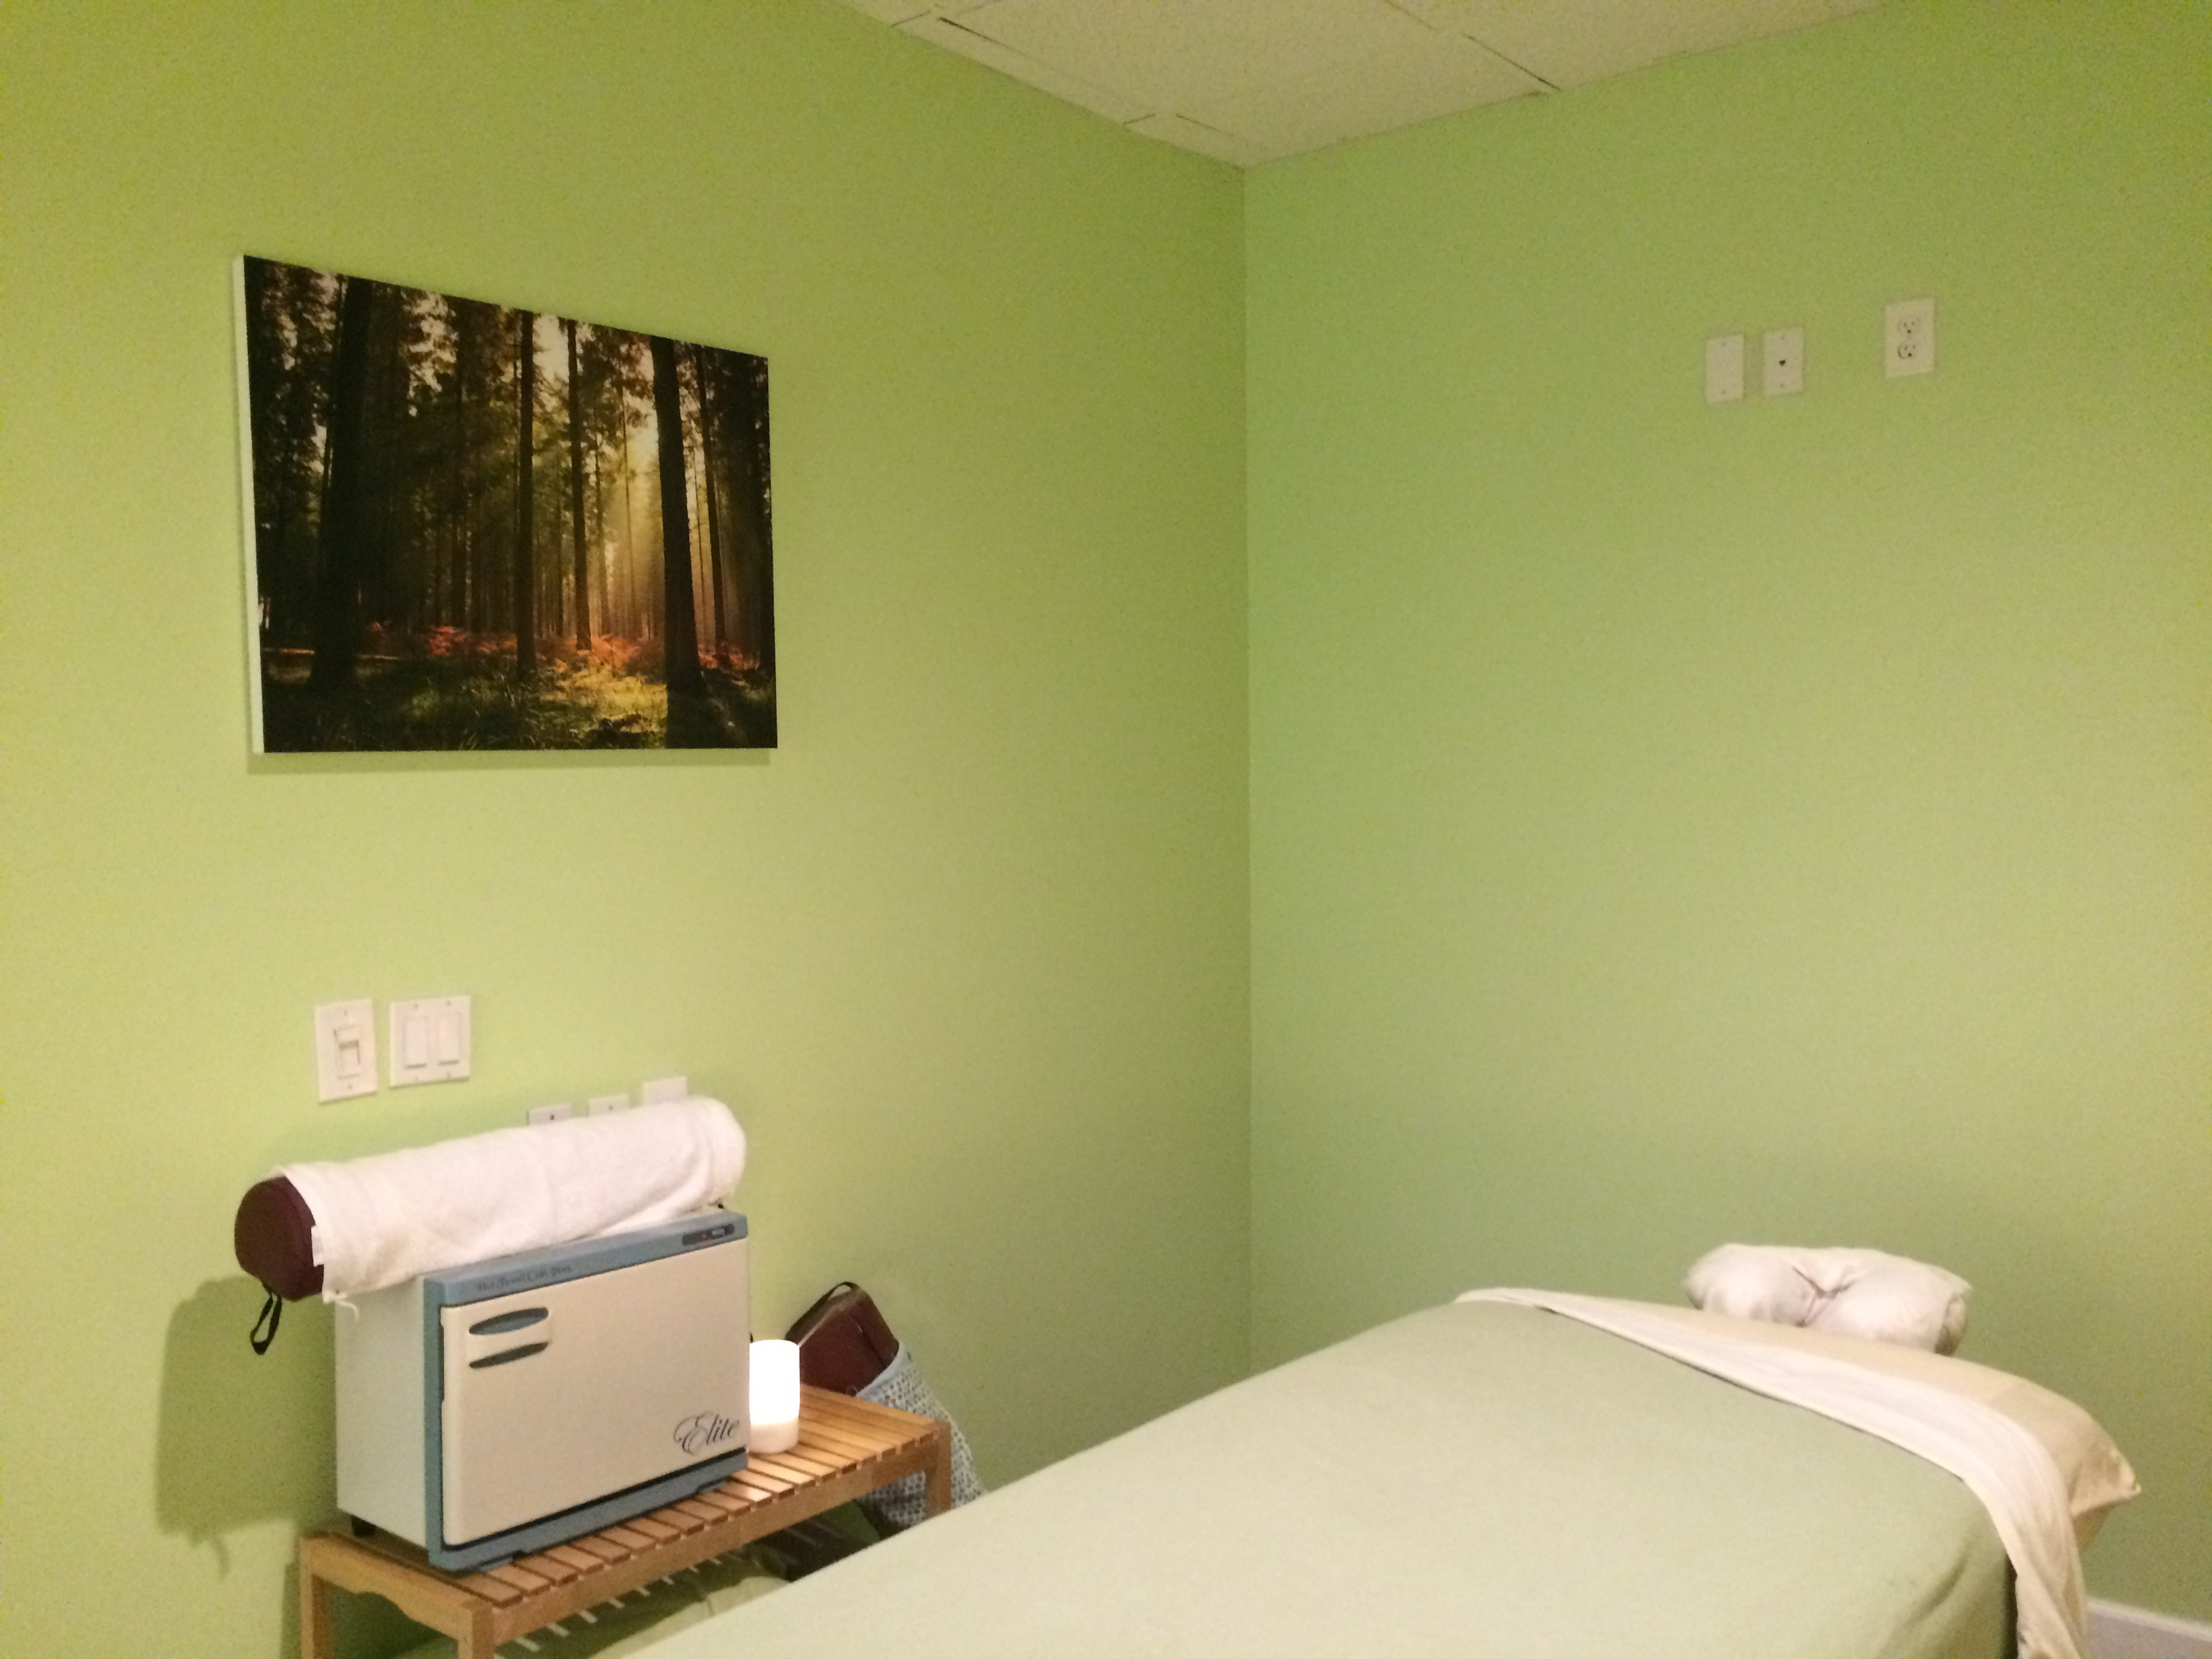 massage room 2a green forest wellness center rh greenforestwellness com green room massage therapy green massage orange ct